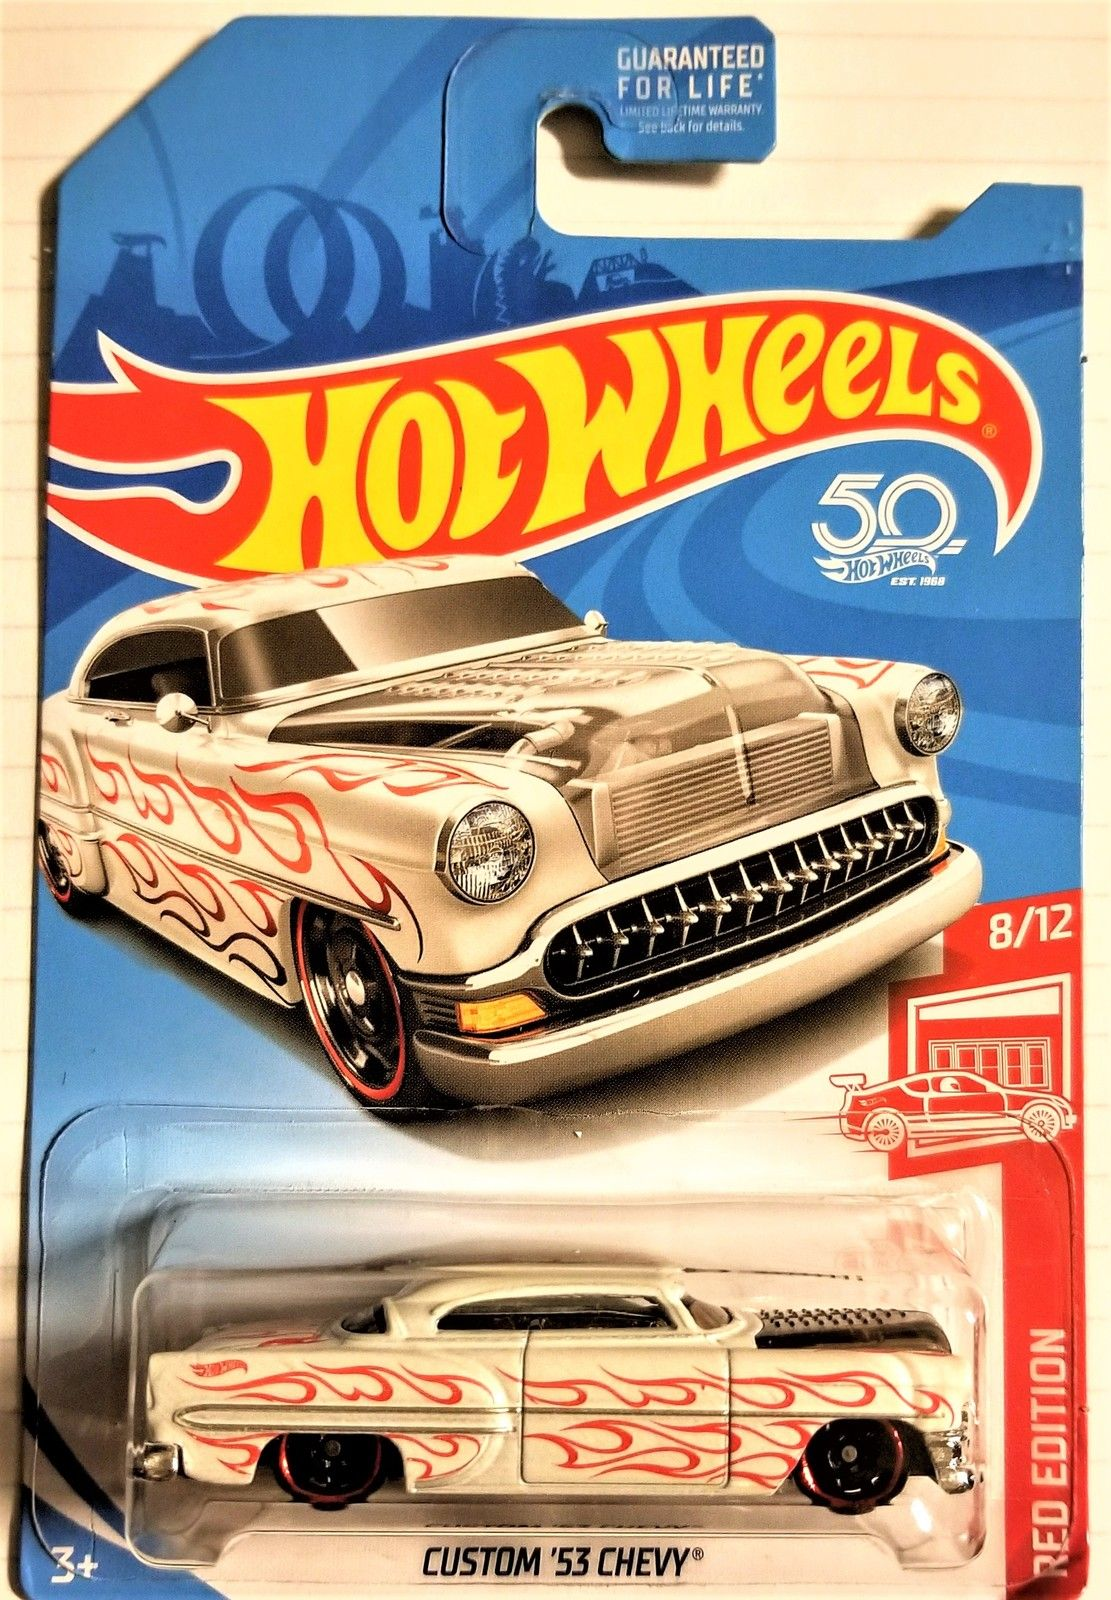 Hot Wheels 50th Anniversary Custom 53 Chevy Target Exclusive